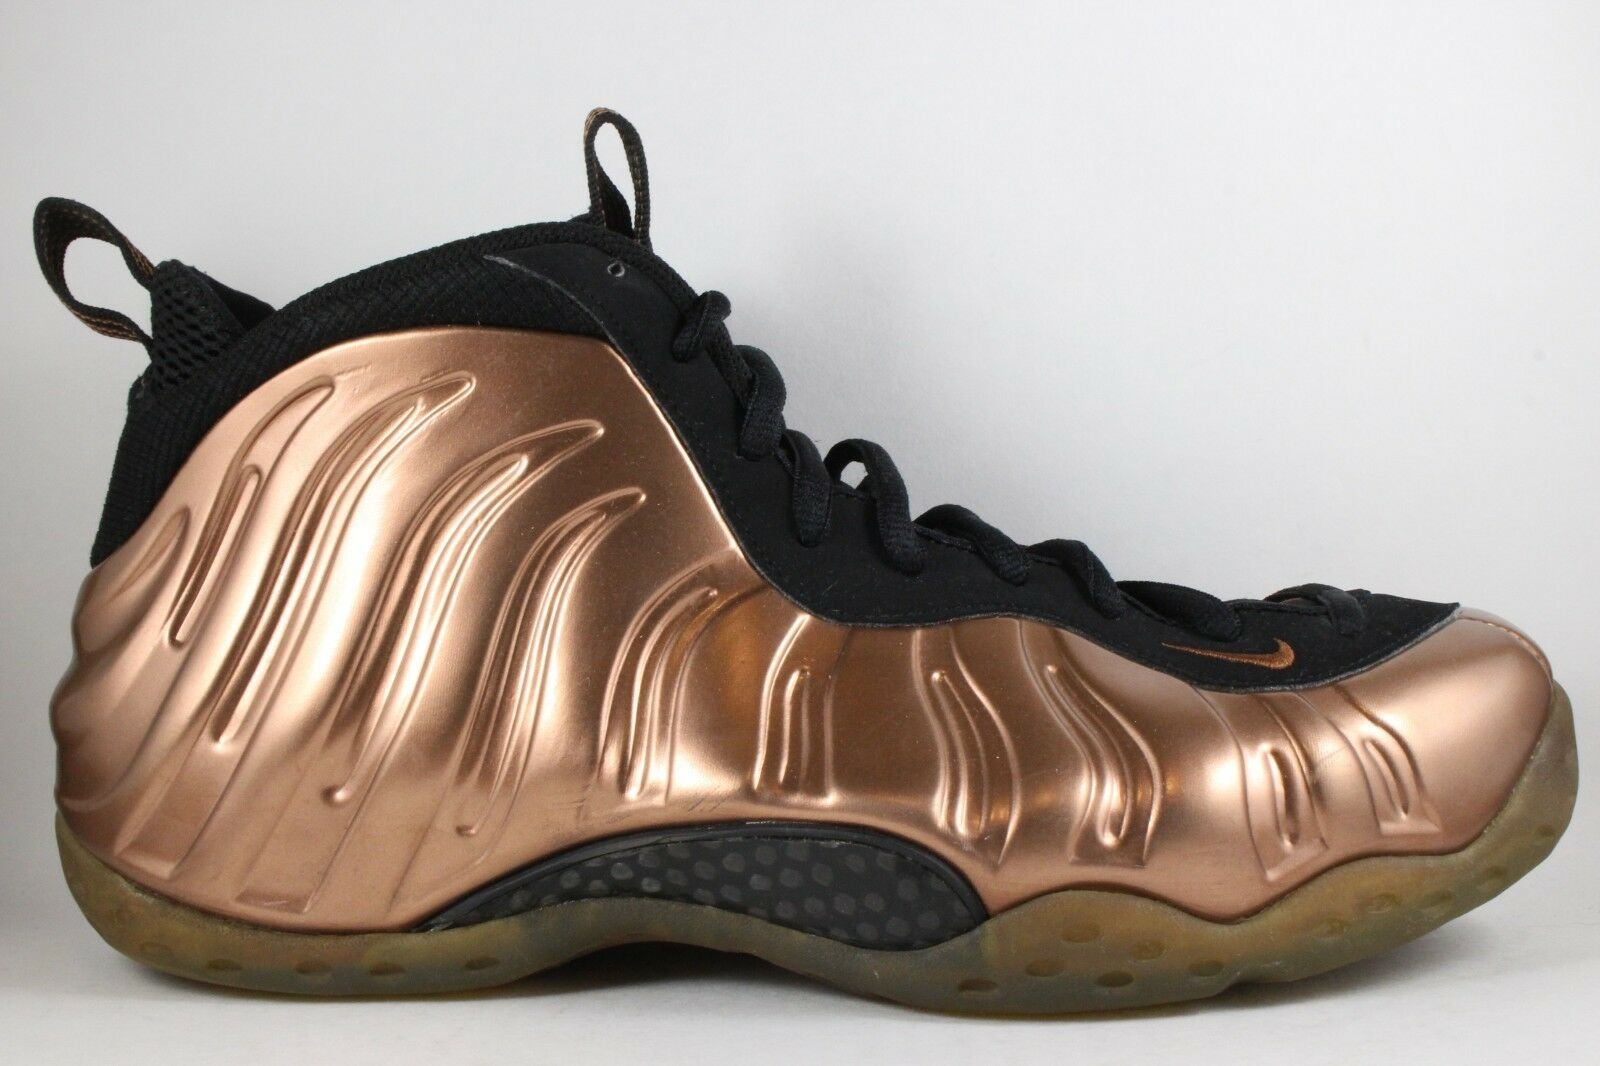 2010 Nike Air Foamposite One Copper Nero size 10